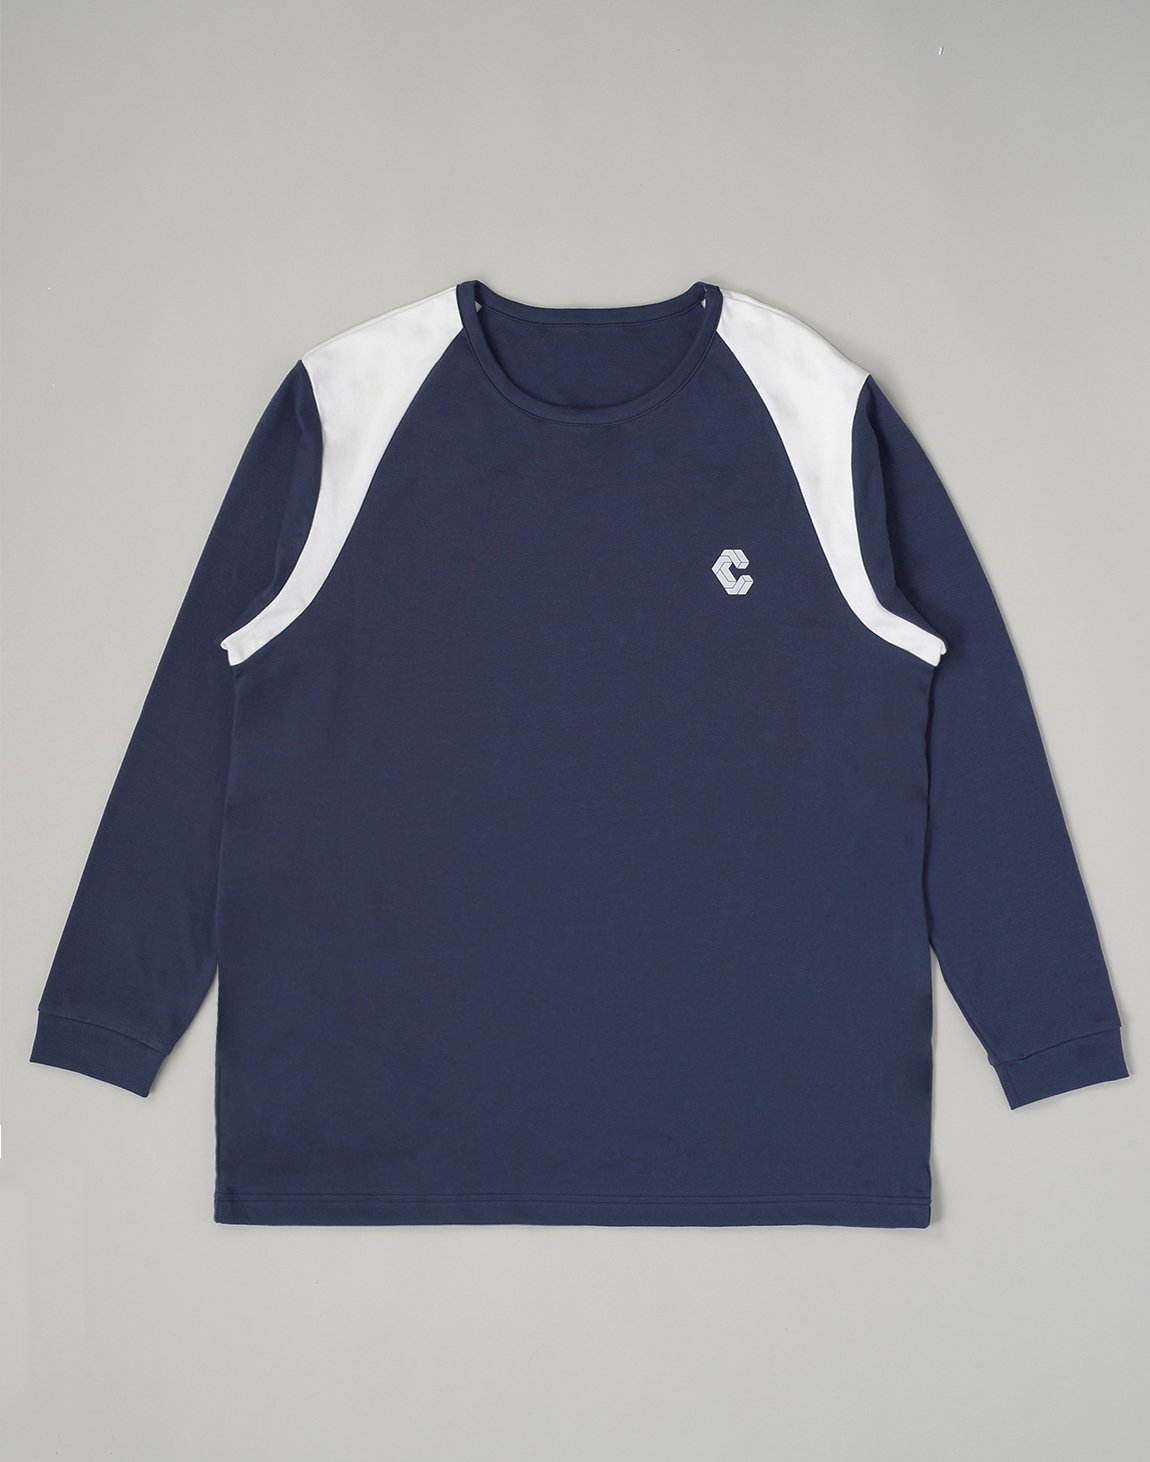 <img class='new_mark_img1' src='https://img.shop-pro.jp/img/new/icons55.gif' style='border:none;display:inline;margin:0px;padding:0px;width:auto;' />CRONOS LATS LINE LONG SLEEVE【NAVY】